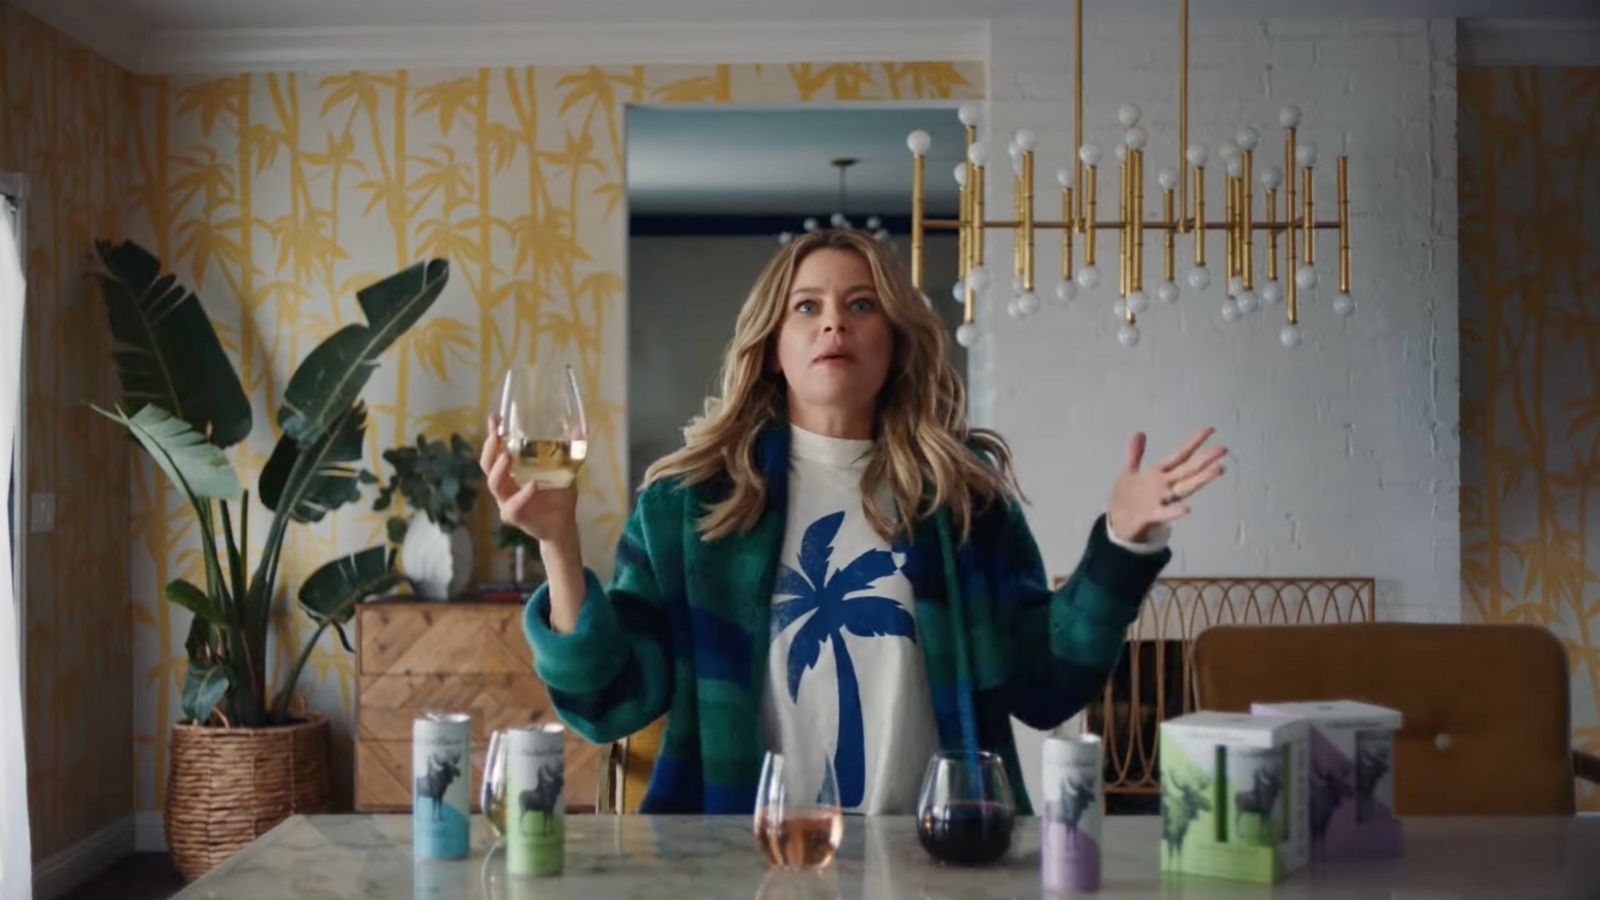 Elizabeth Banks causes chaos in a kitchen